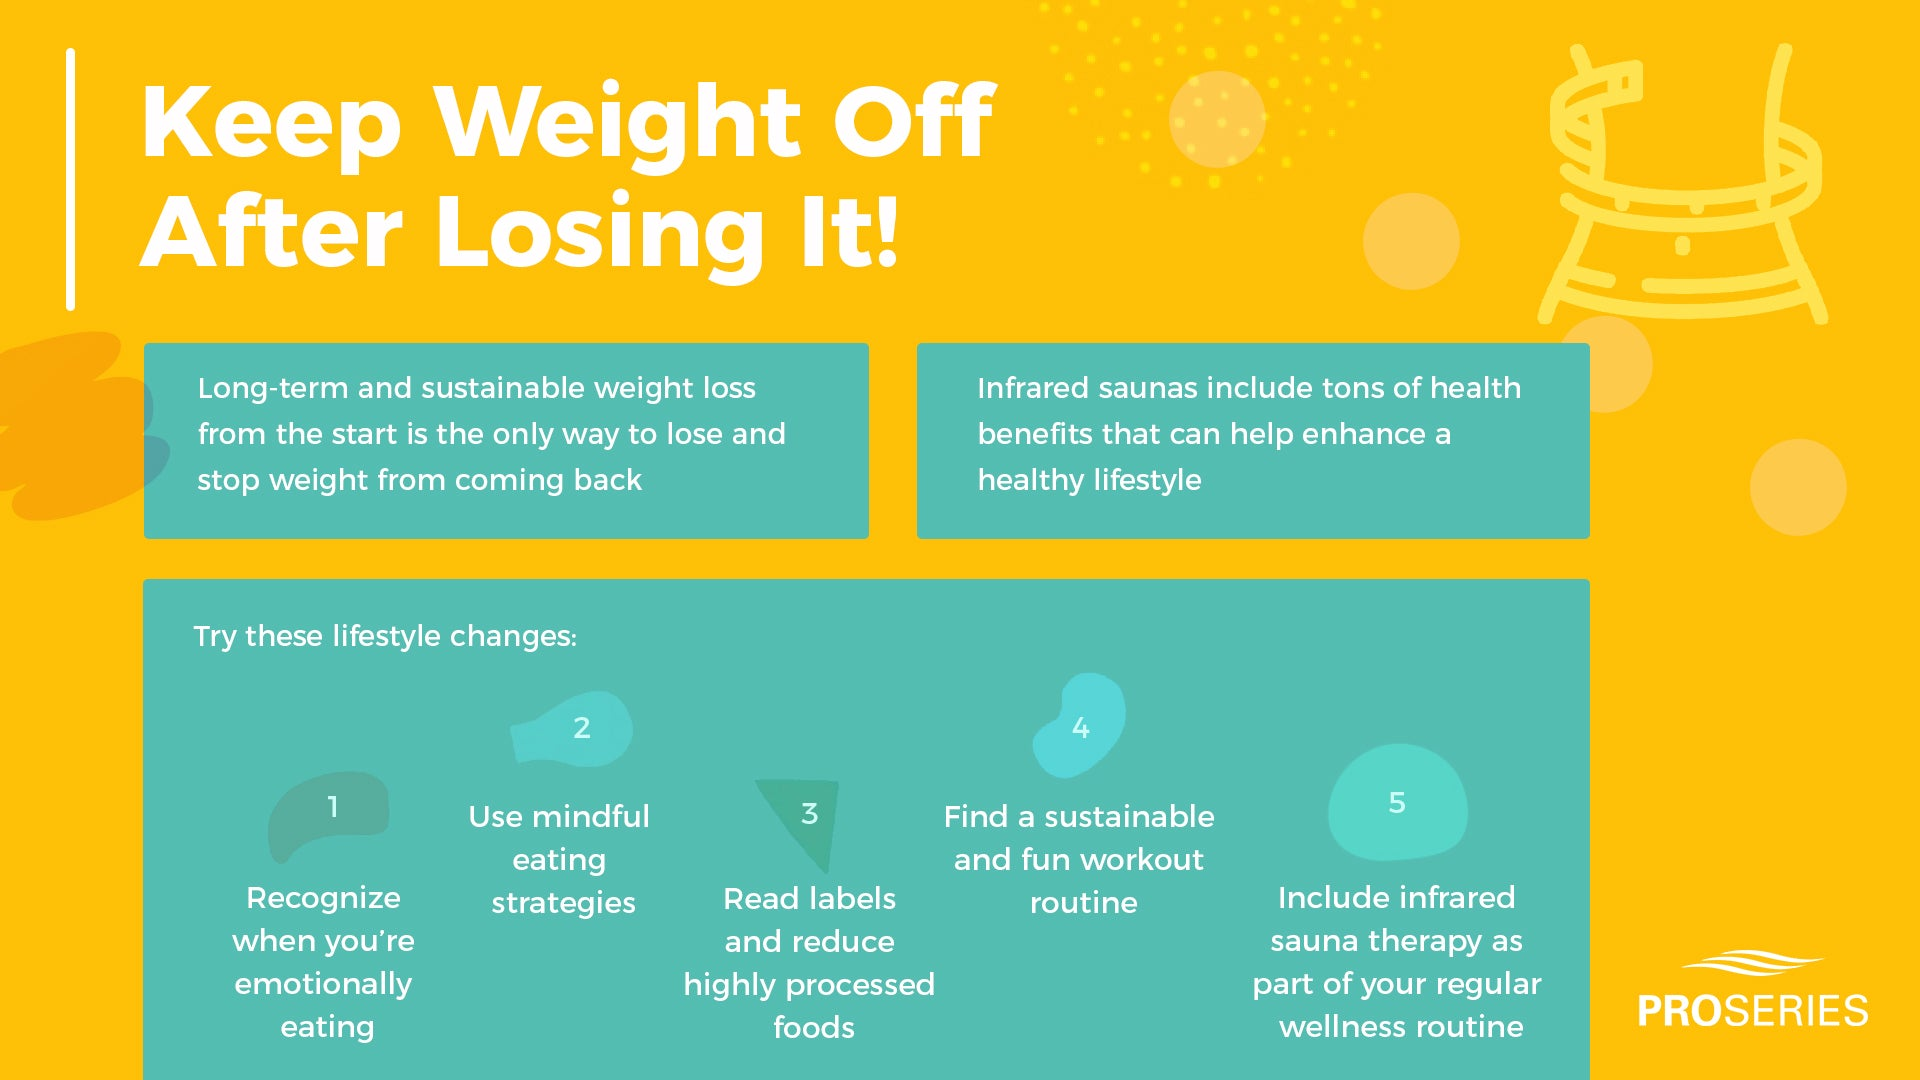 Keep Weight Off After Losing It! -Long-term and sustainable weight loss from the start is the only way to lose and stop weight from coming back -Try these lifestyle changes: 1. Recognize when you're emotionally eating 2. Use mindful eating strategies 3. Read labels and reduce highly processed foods 4. Find a sustainable and fun workout routine 5. Include infrared sauna therapy as part of your regular wellness routine -Infrared saunas include tons of health benefits that can help enhance a healthy lifestyle